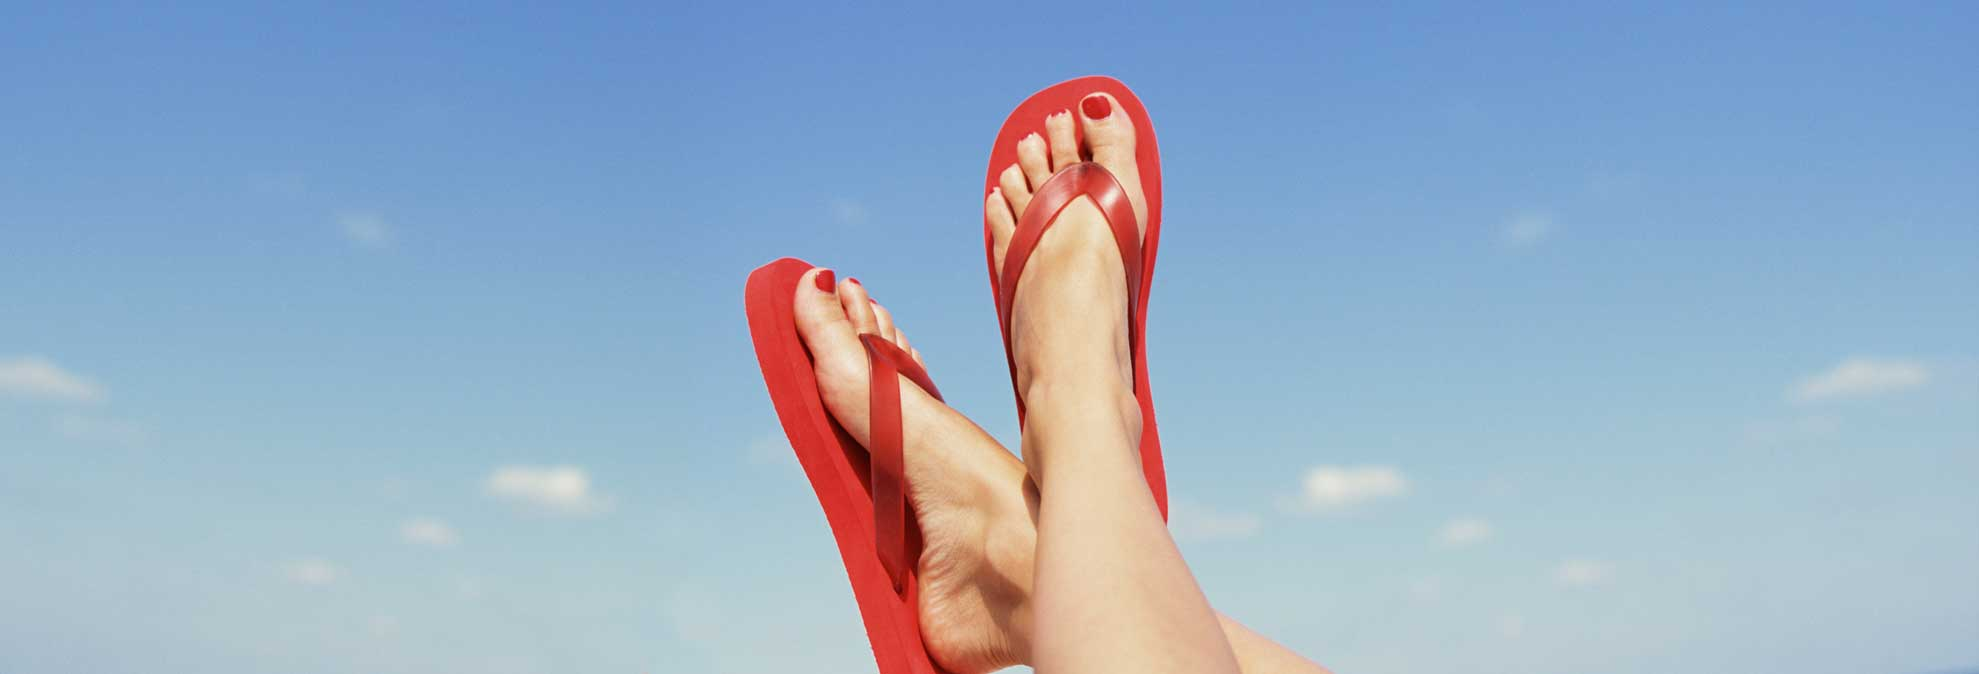 Flip Flops And Plantar Fasciitis Consumer Reports